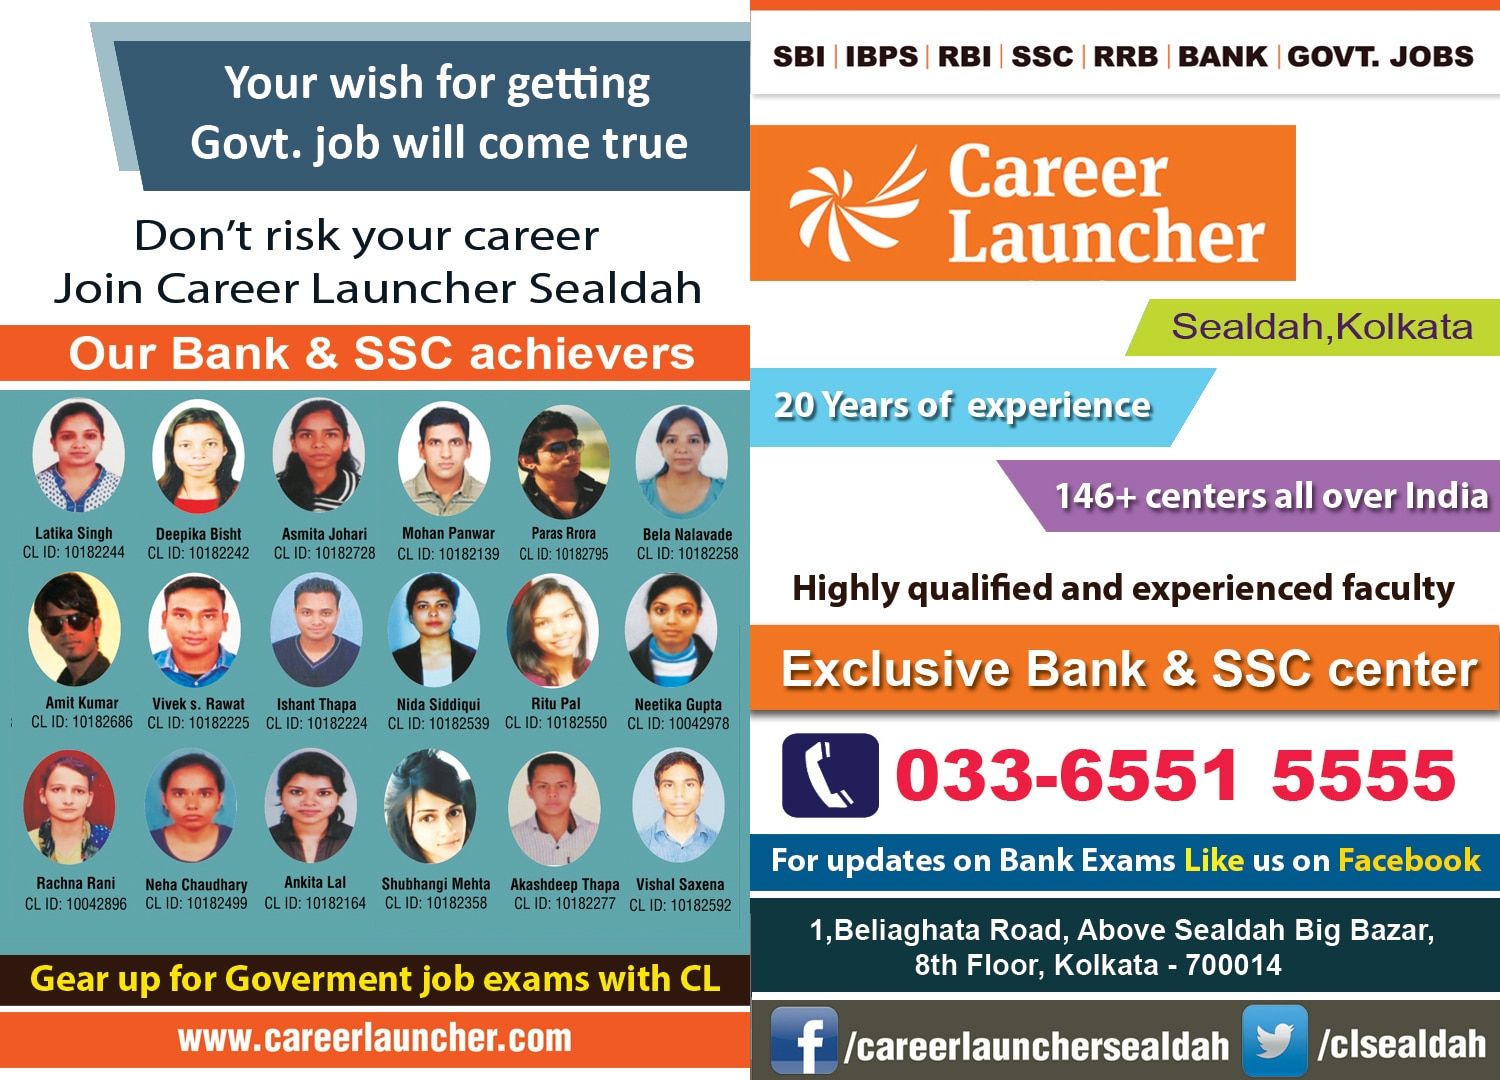 Career Launcher Sealdah